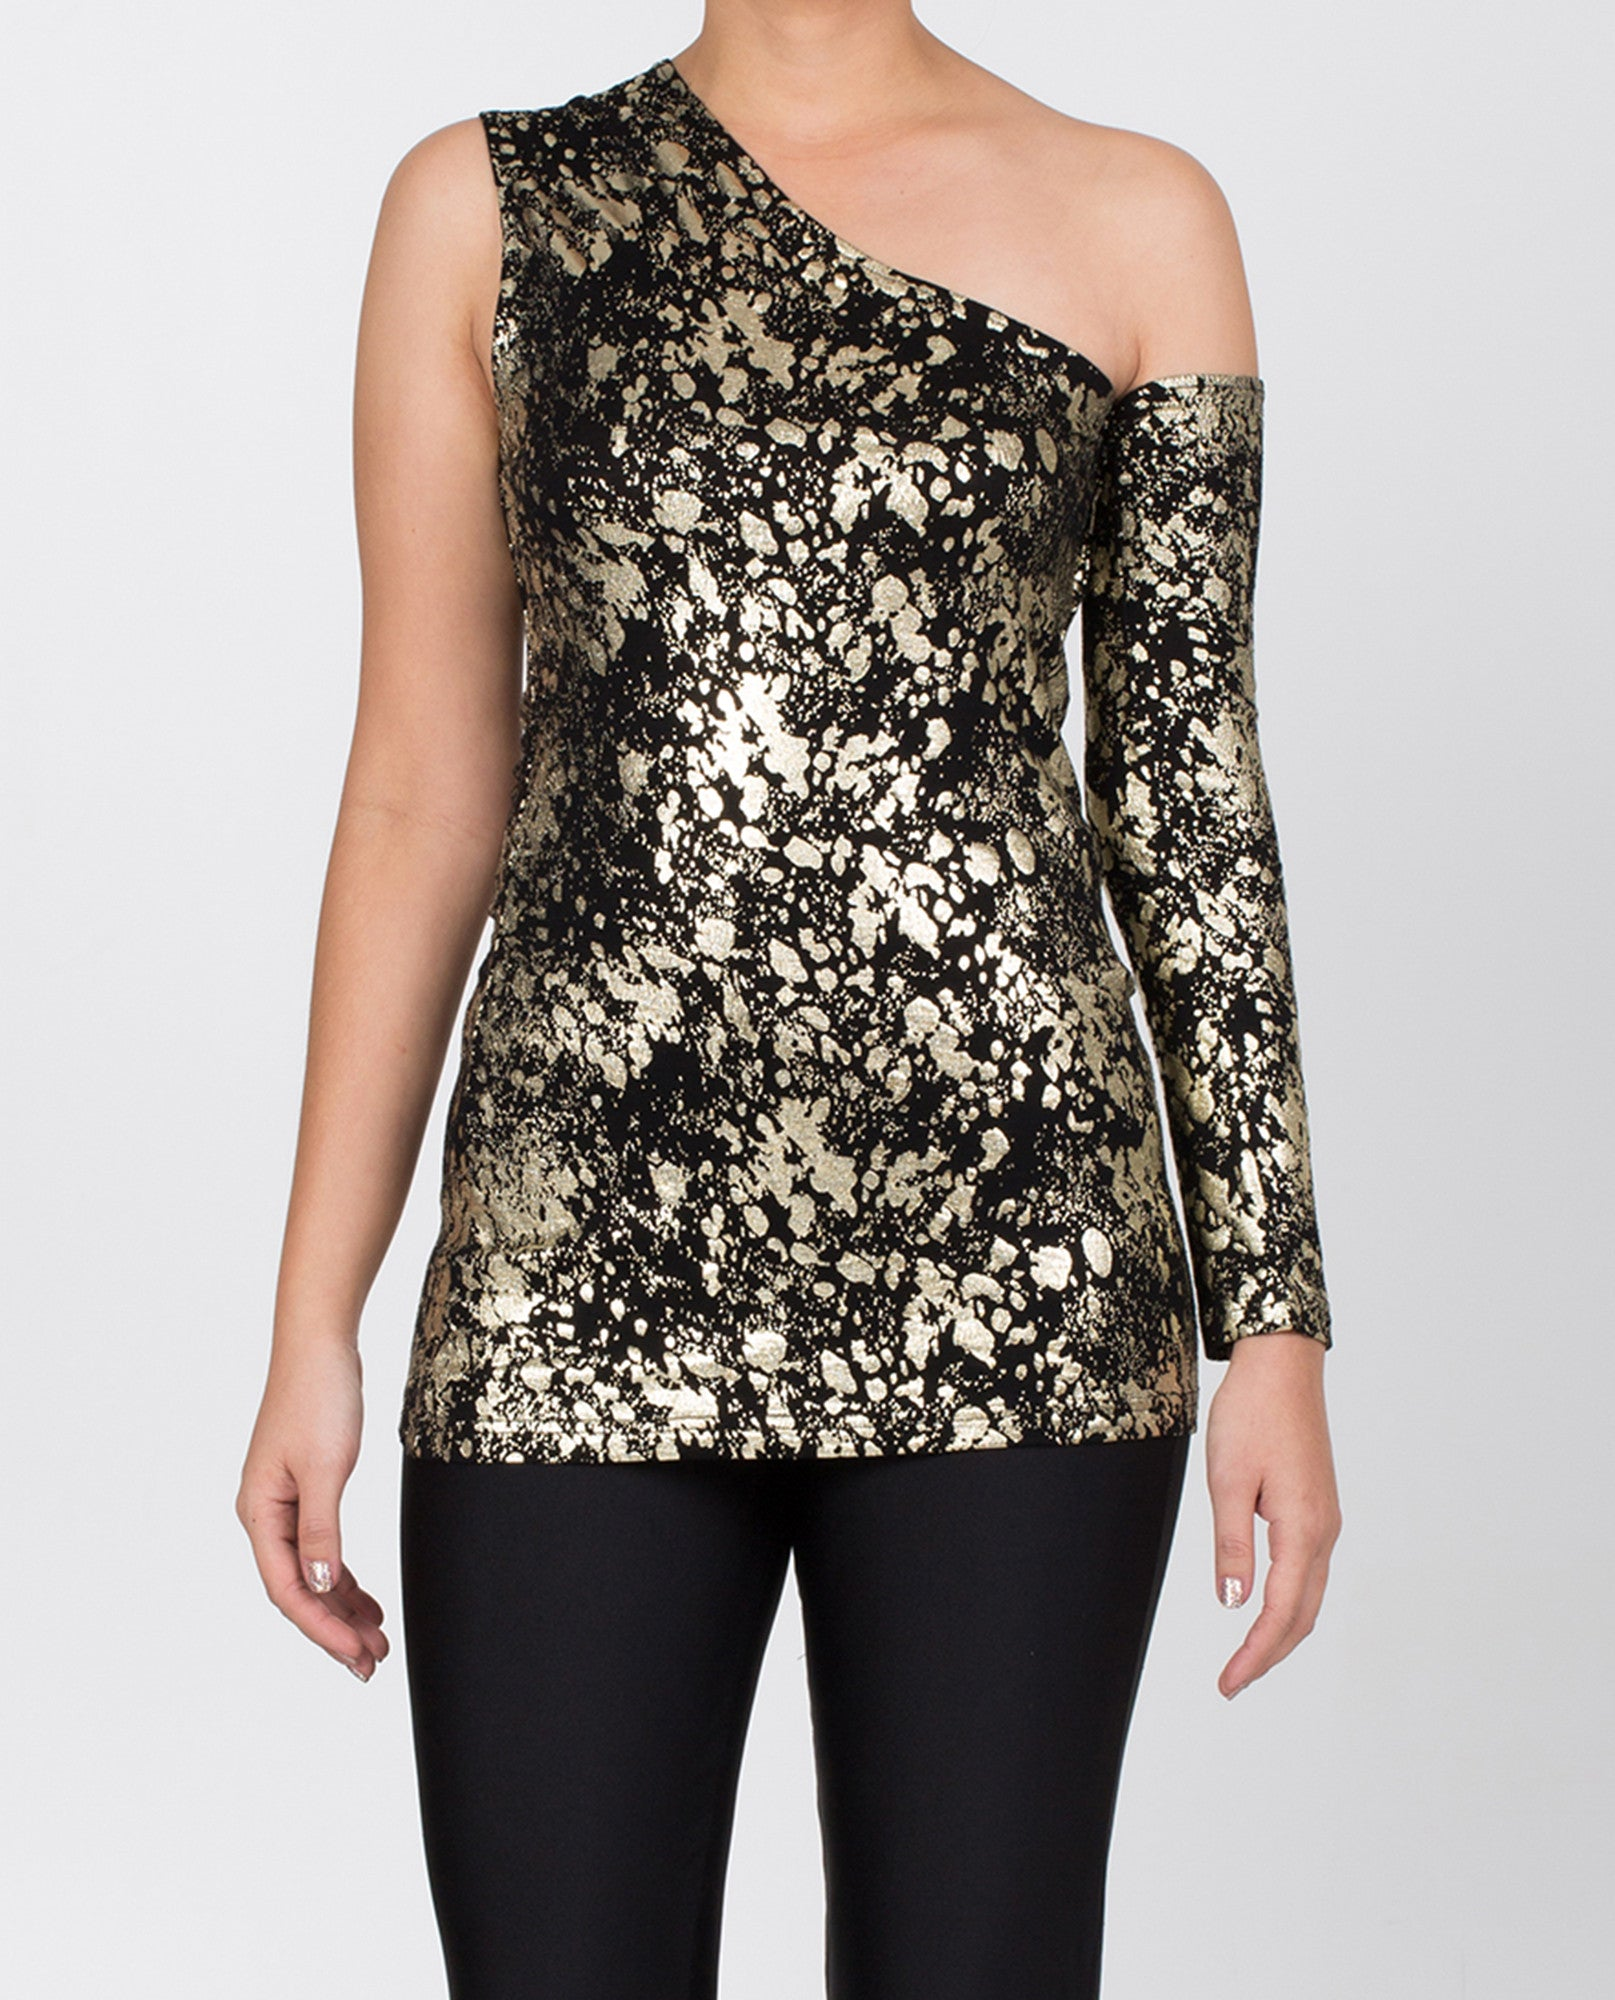 Caroline One-Shoulder - Black / Gold